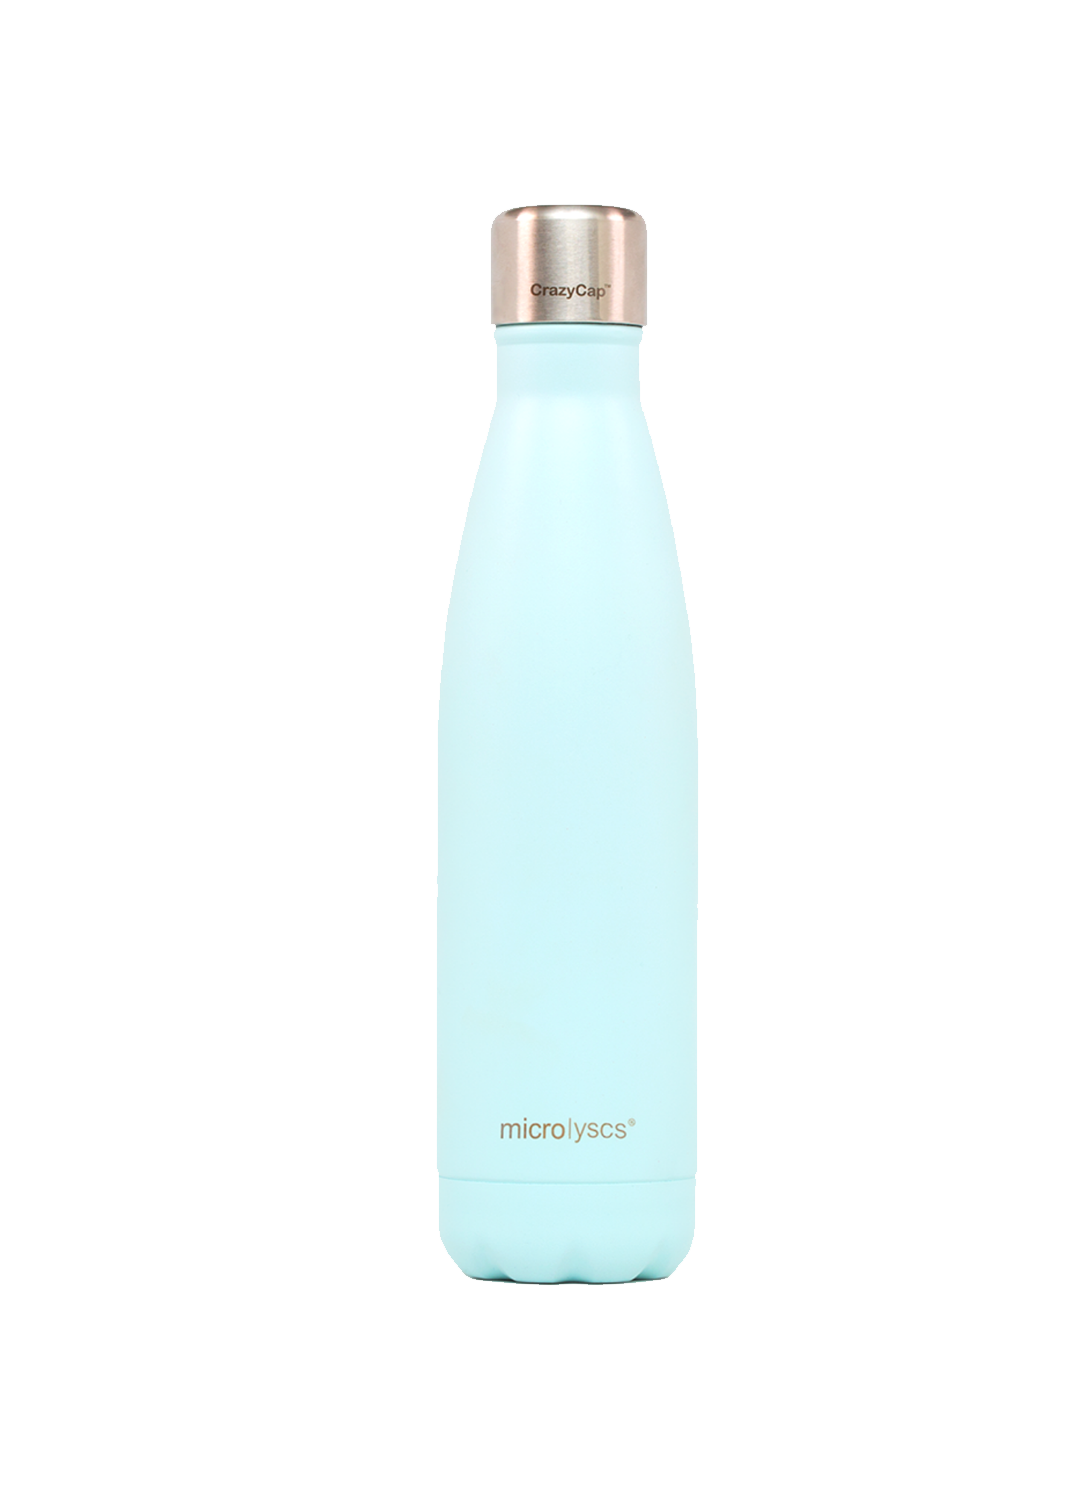 CrazyCap Self-Purifying Bottle and Cap